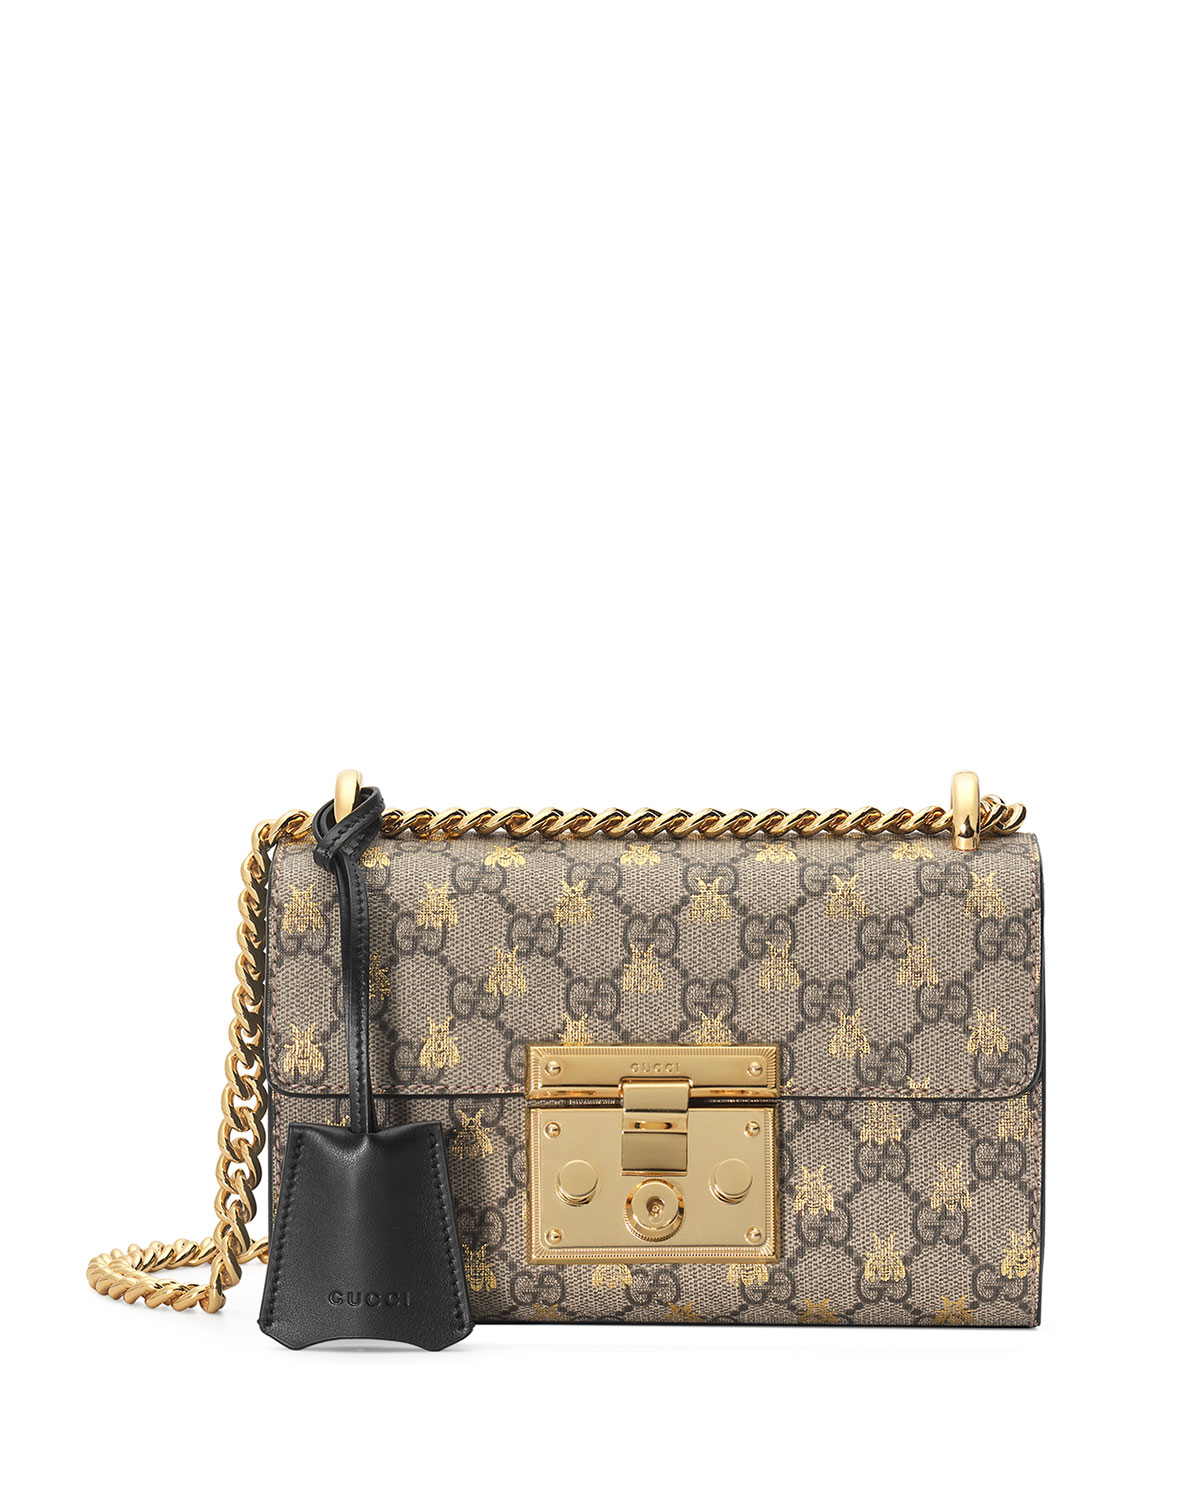 3b489d82f Gucci Padlock Small GG Supreme Bees Shoulder Bag | Neiman Marcus